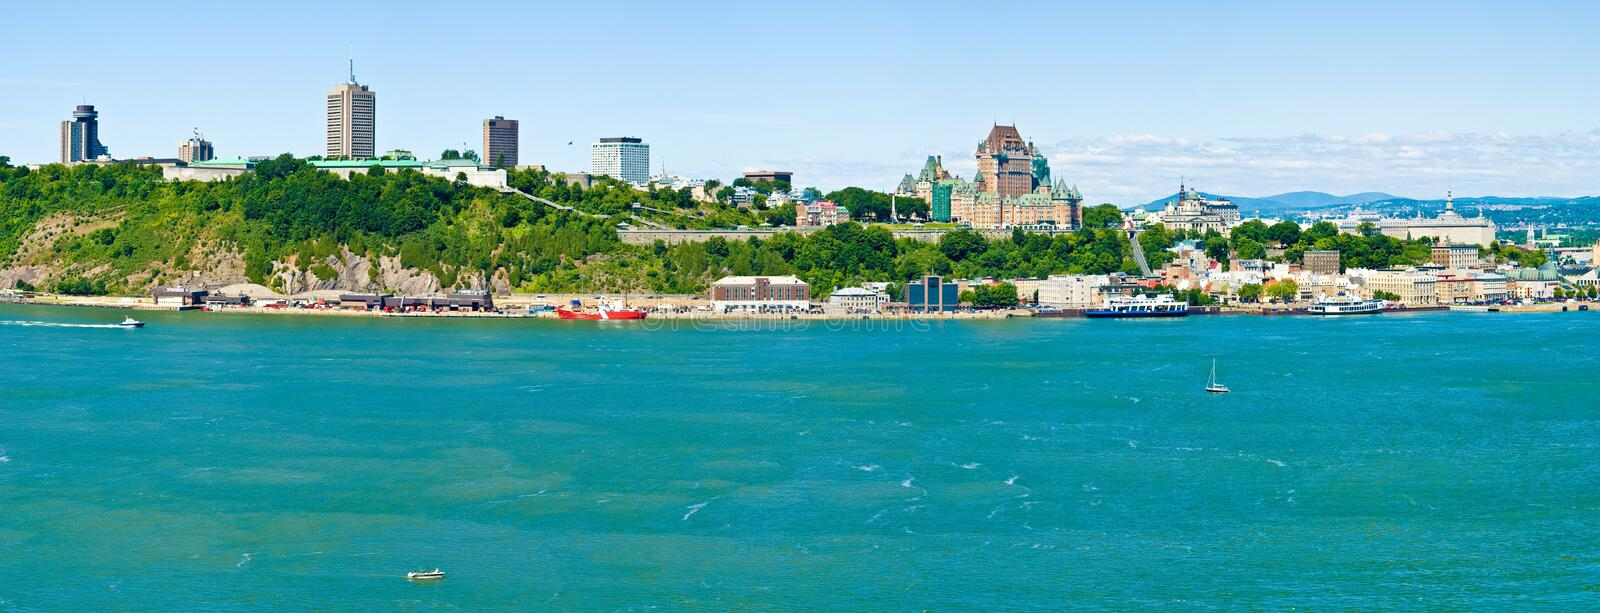 Quebec City. Old Quebec and Chateau Frontenac stock images